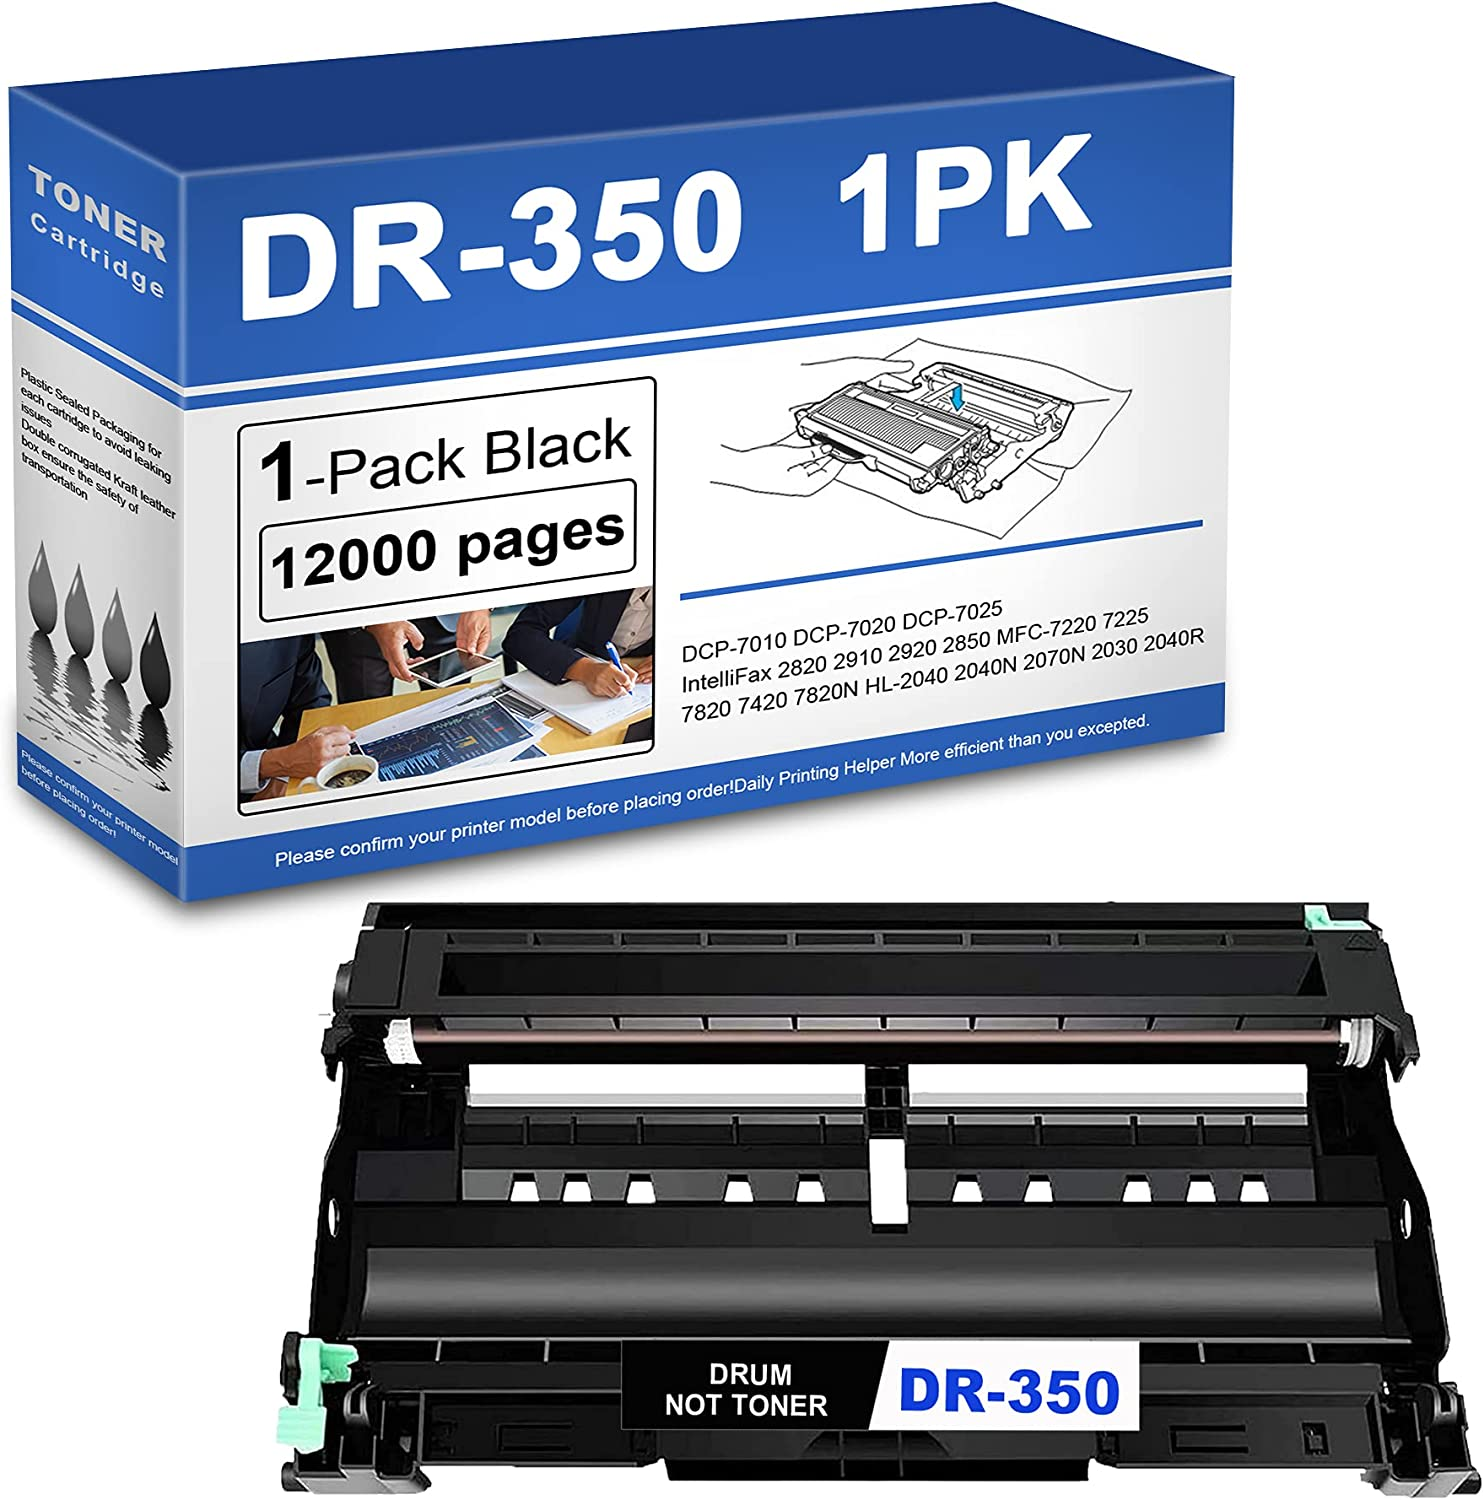 1 Pack DR-350 Drum Unit Replacement for Brother DR350 DCP-7010 7020 IntelliFax 2820 MFC-7220 7240 HL-2030 2040 Printer Toner.